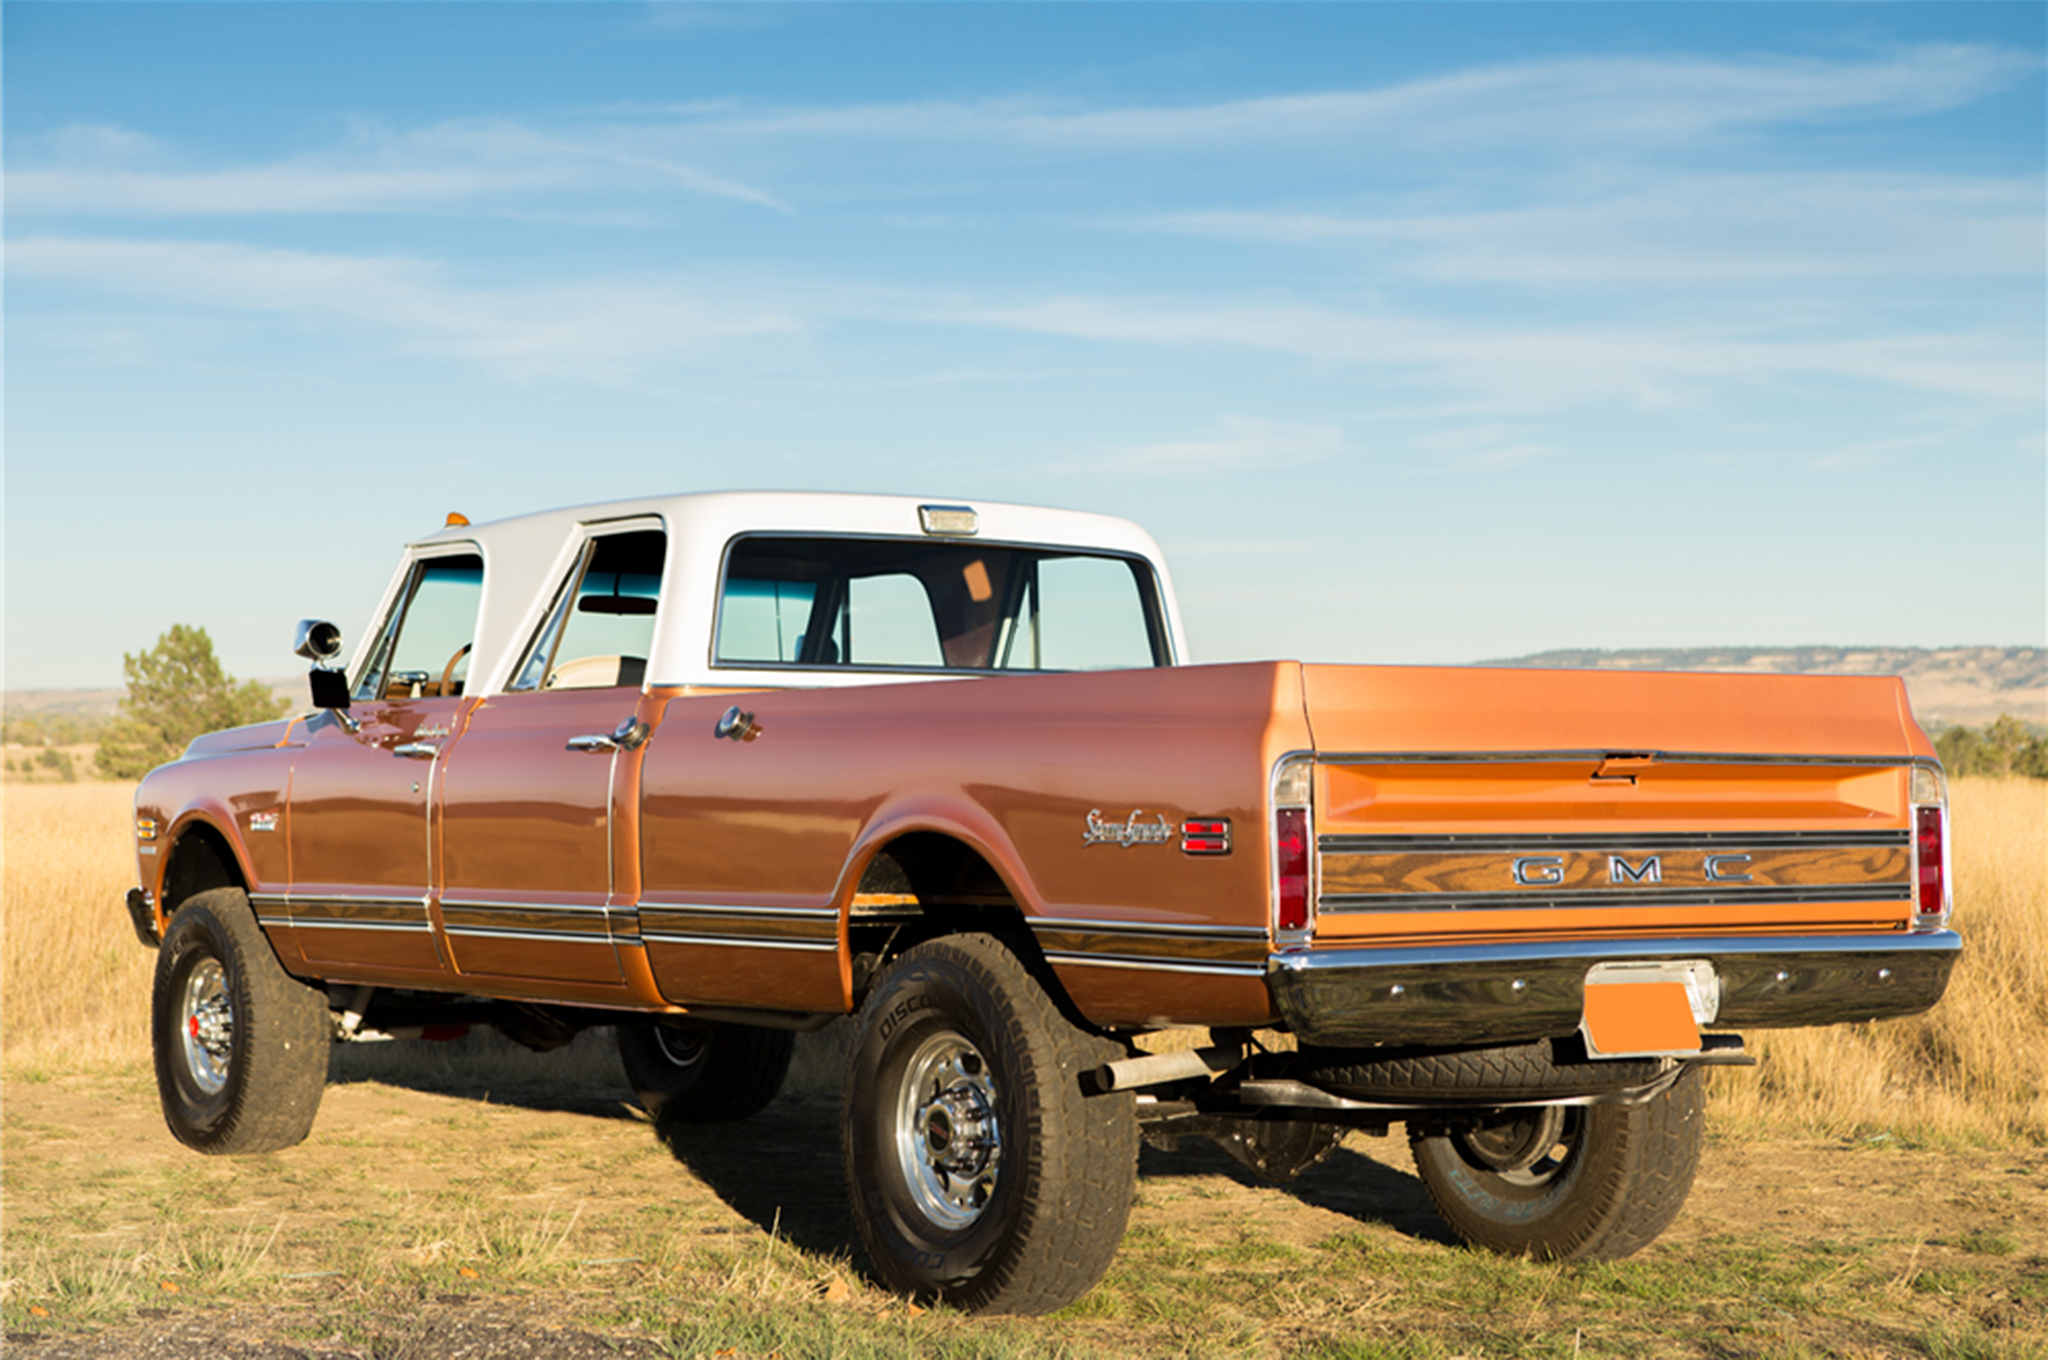 Just Listed Six Offbeat Cars From Barrett Jacksons 2017 Scottsdale 1970 Ford Crew Cab For Sale Show More